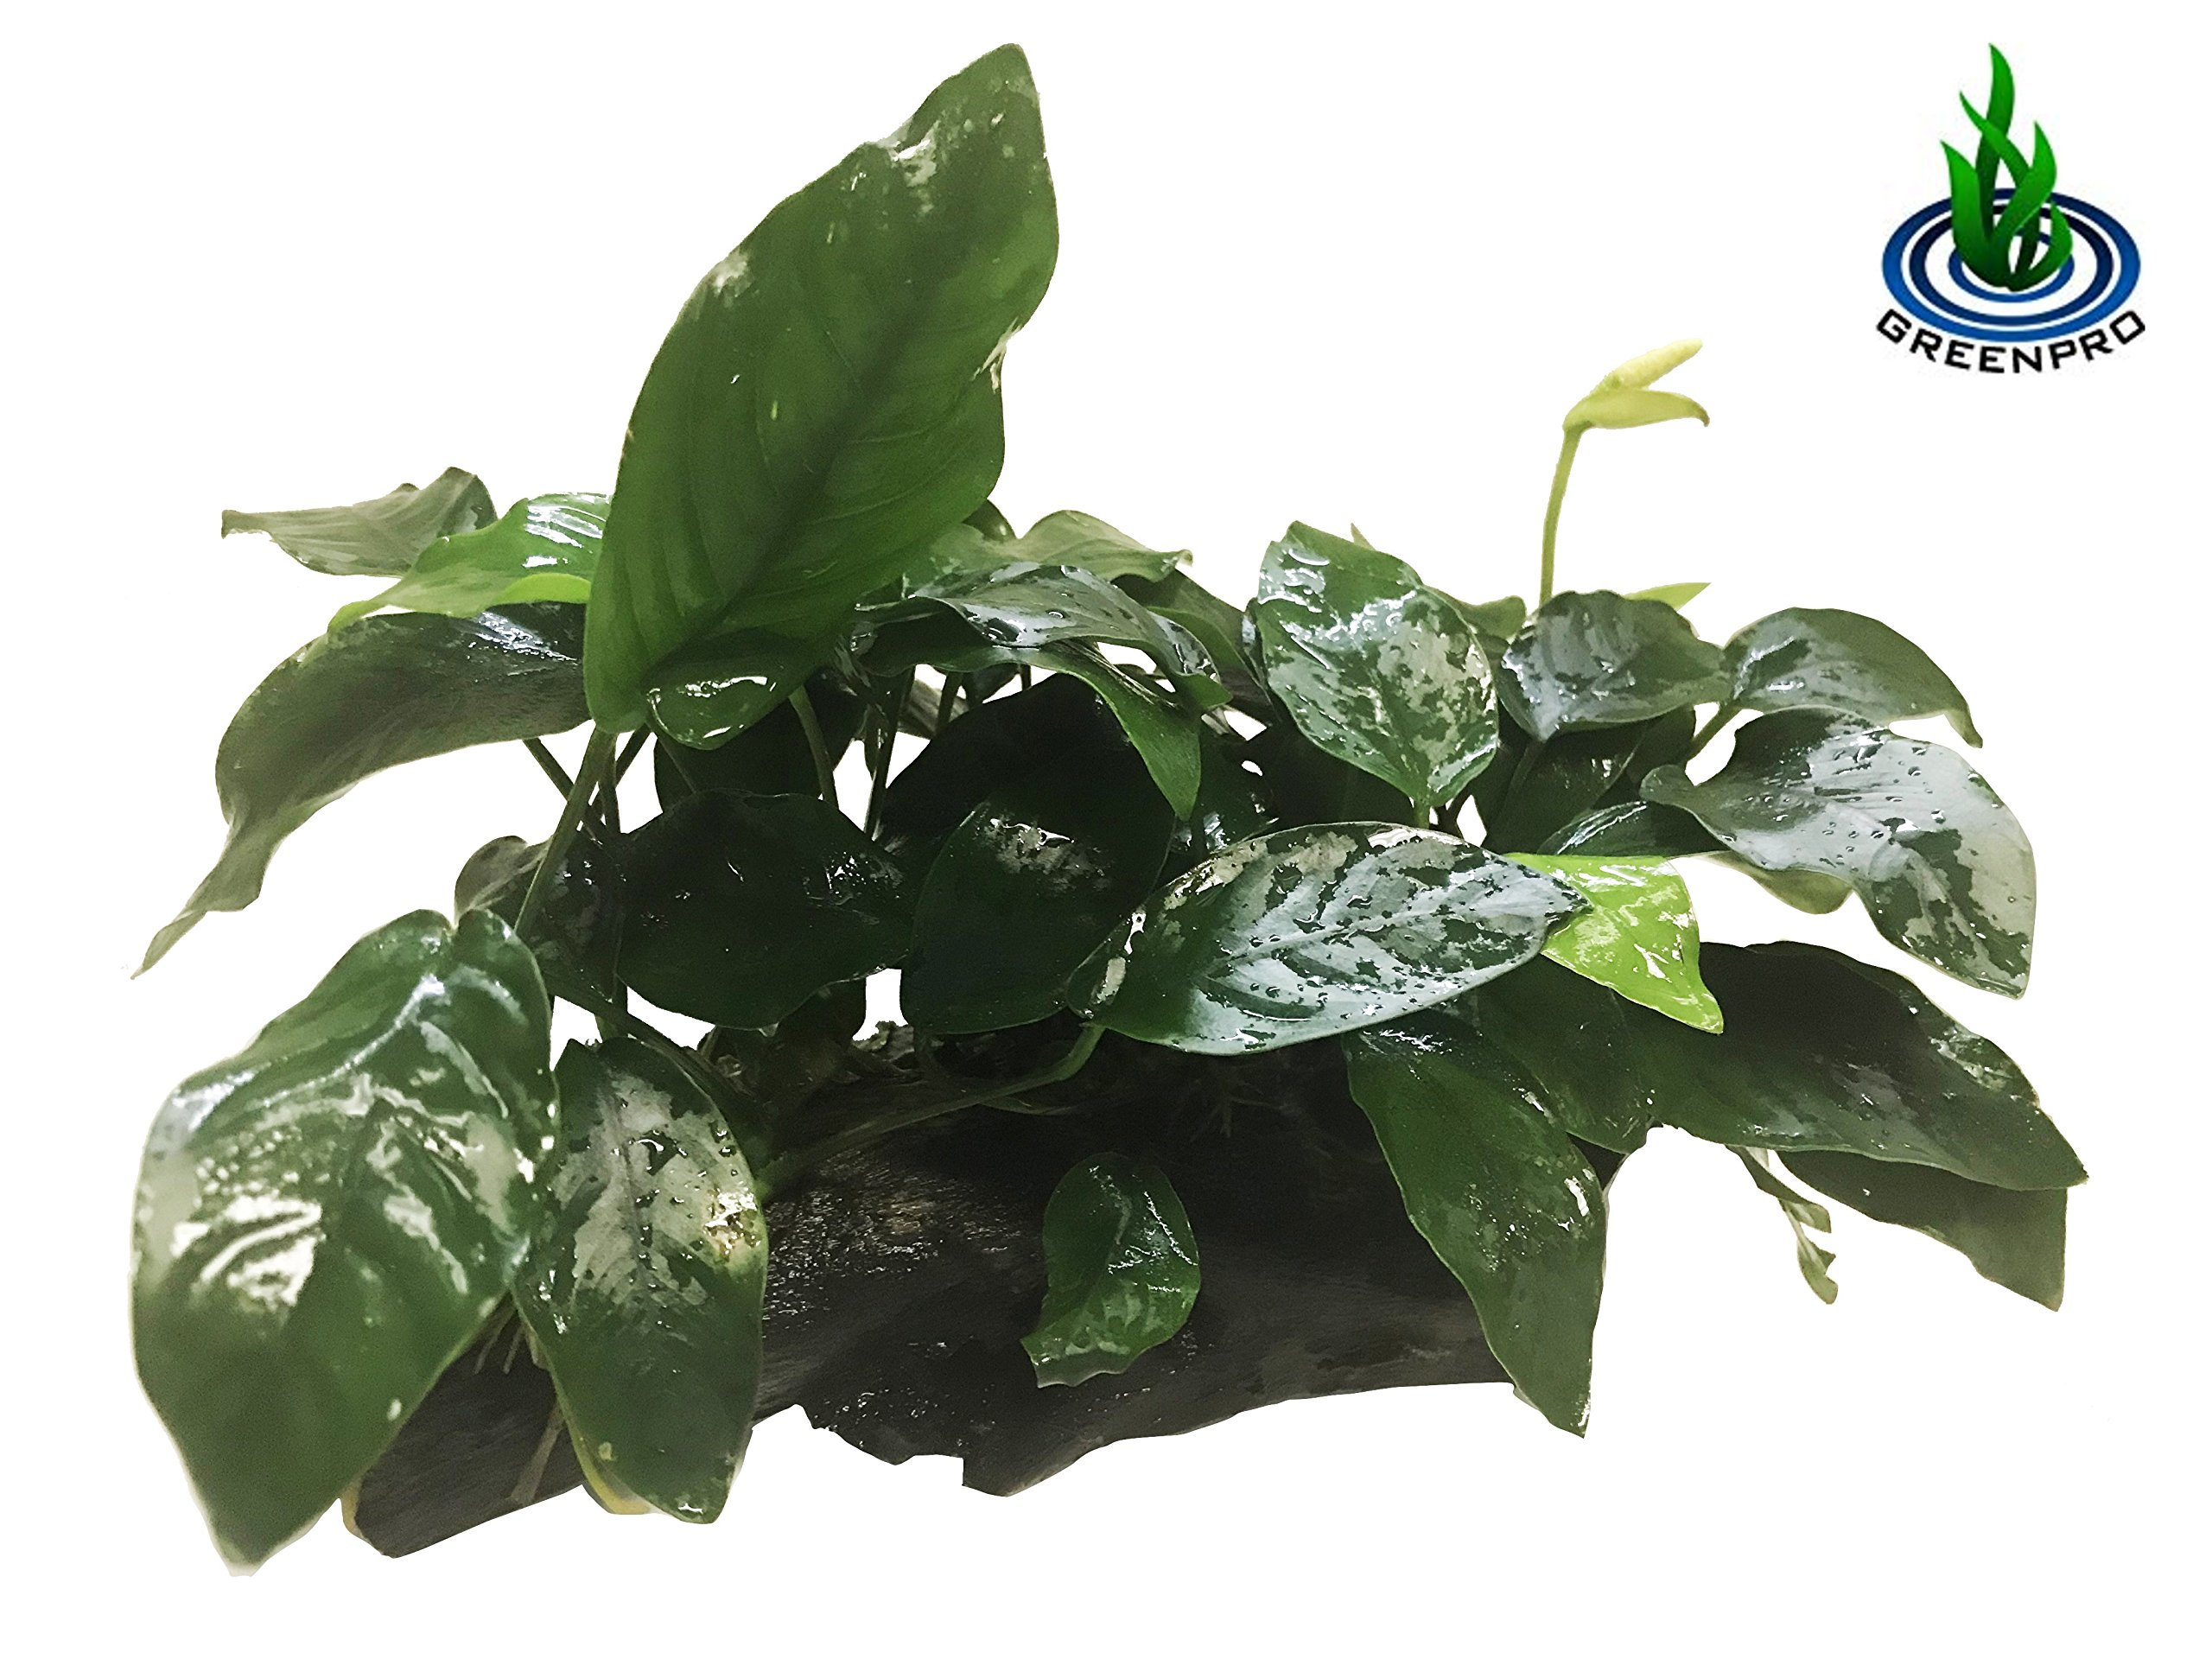 GreenPro (Anubias Nana 10+ Leaf Rooted) Anubias, Java Fern, Moss and more! Freshwater Live Aquarium Plants on Driftwood For Aquatic Tropical Fish Tank Decorations - Easy For Beginner by